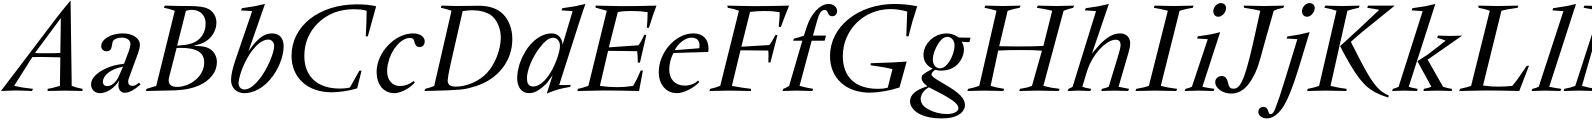 Vendome Regular Italic Font